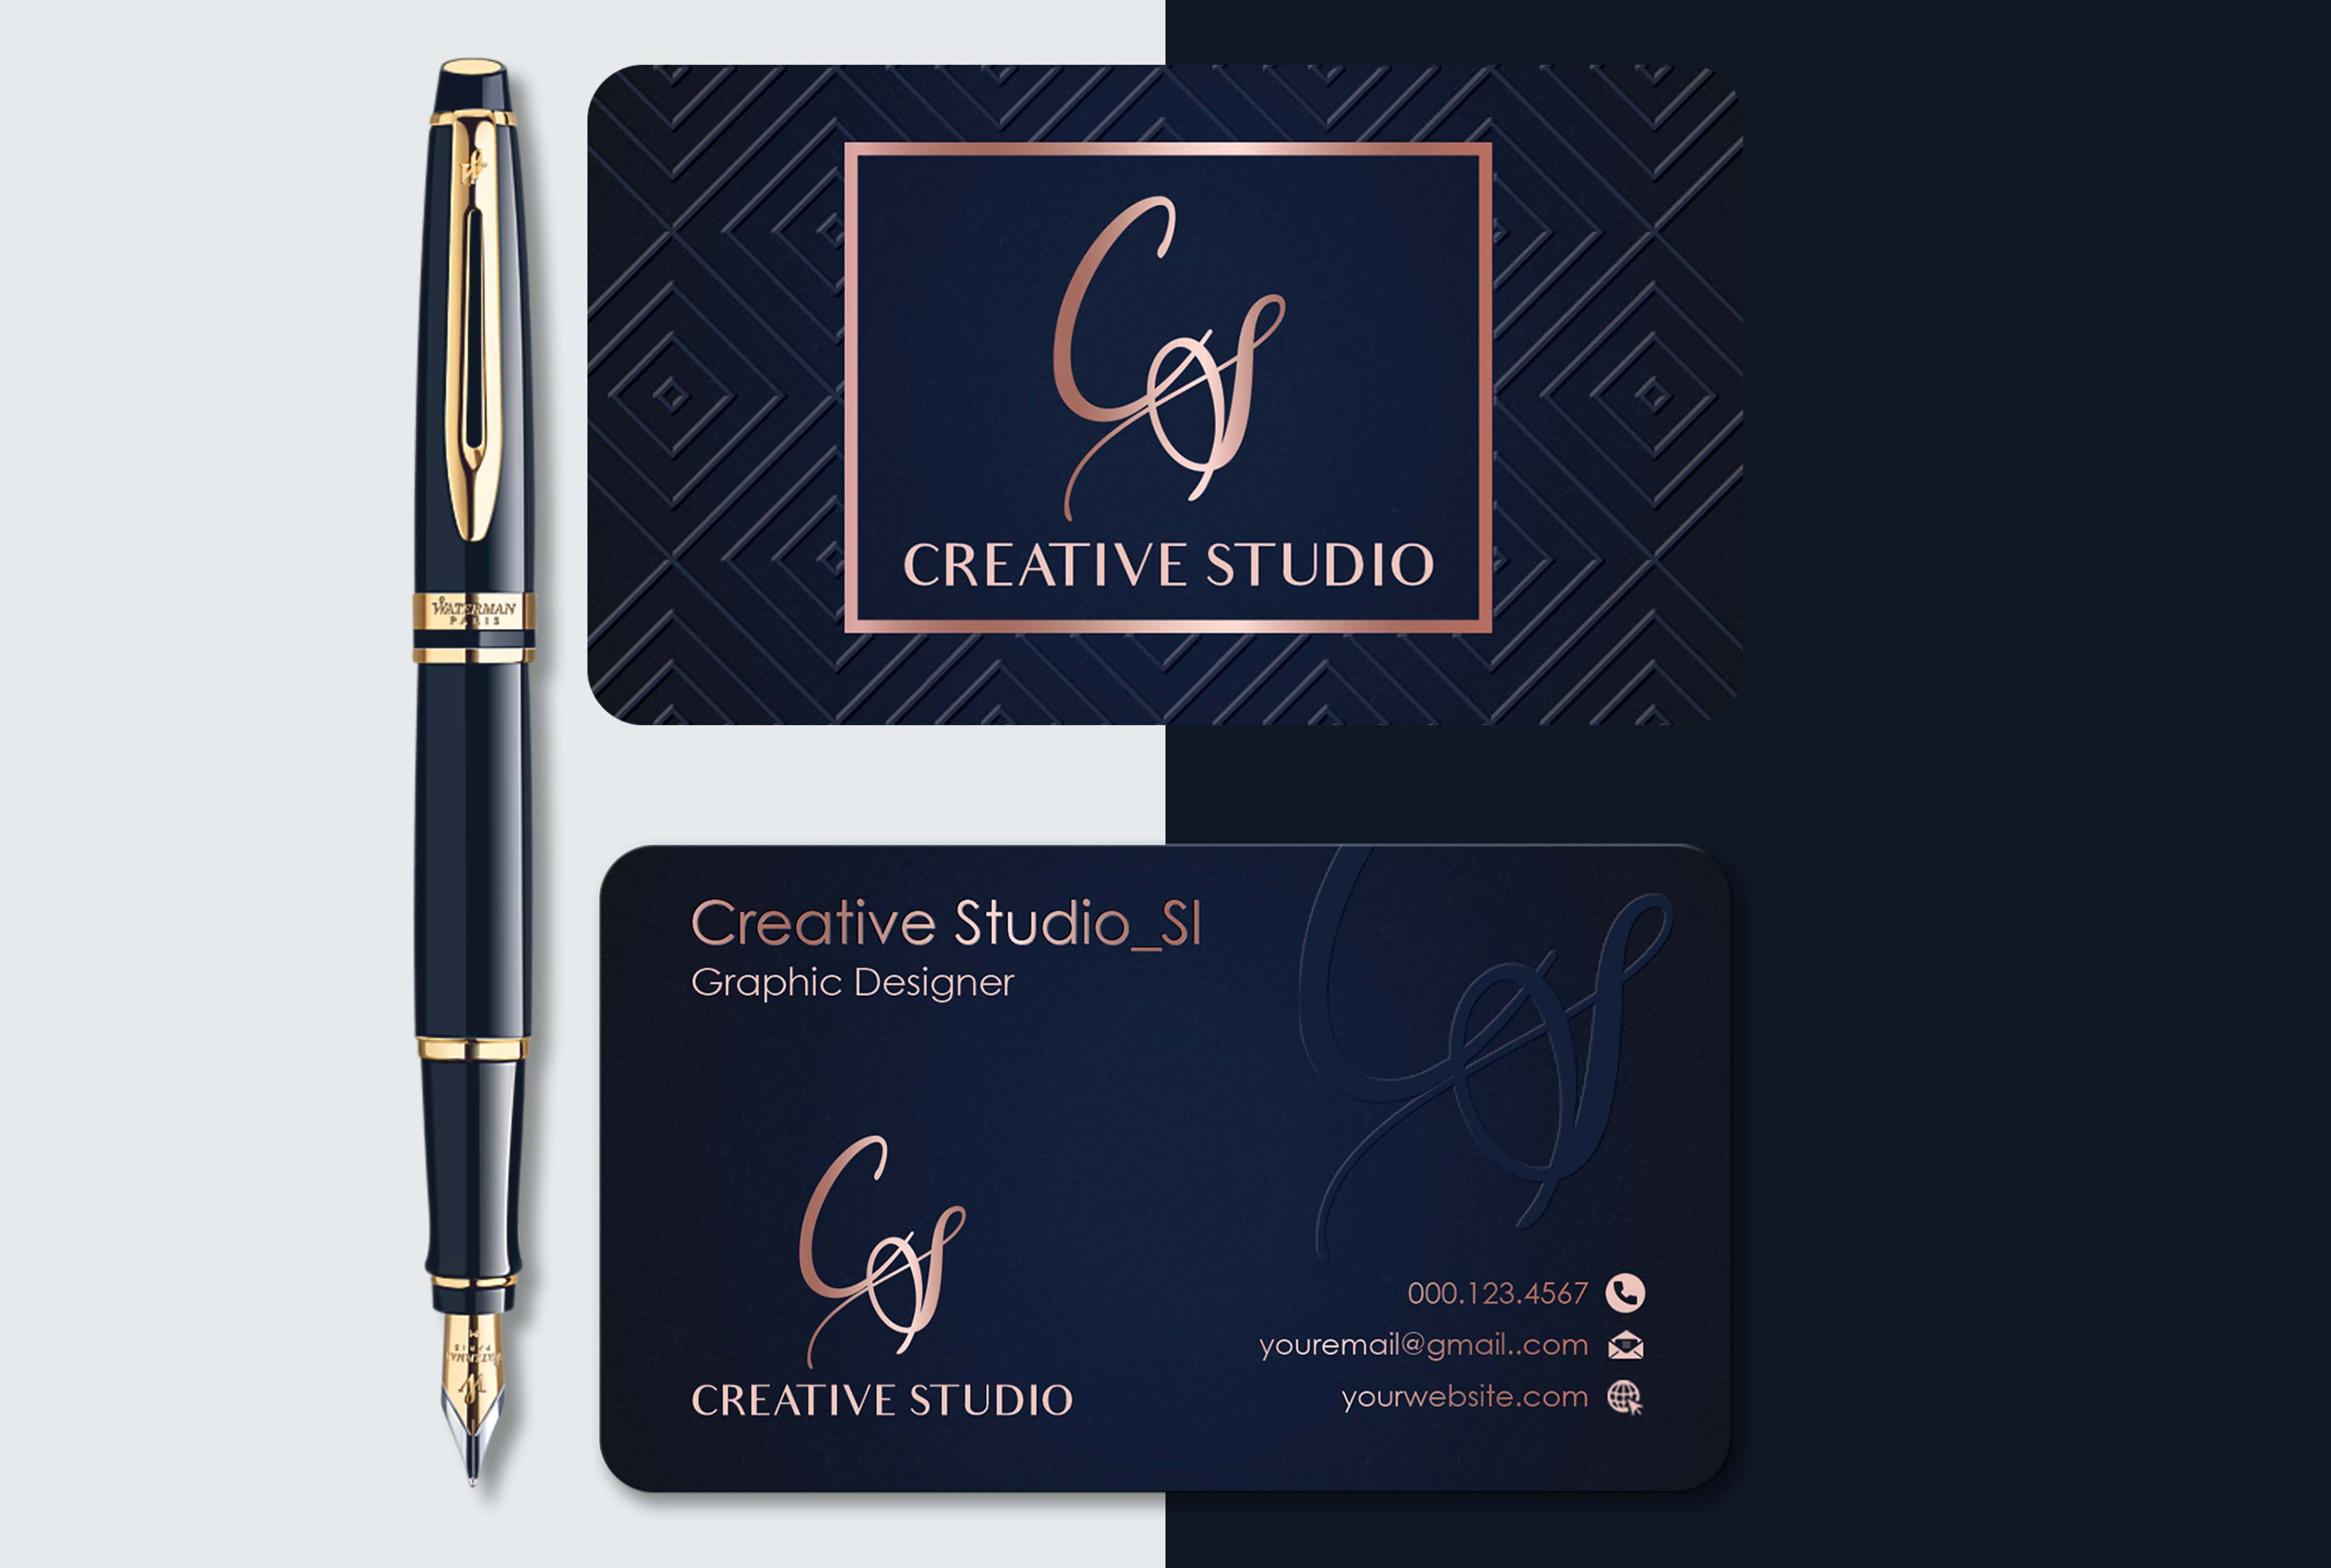 I will provide professional business cards design services